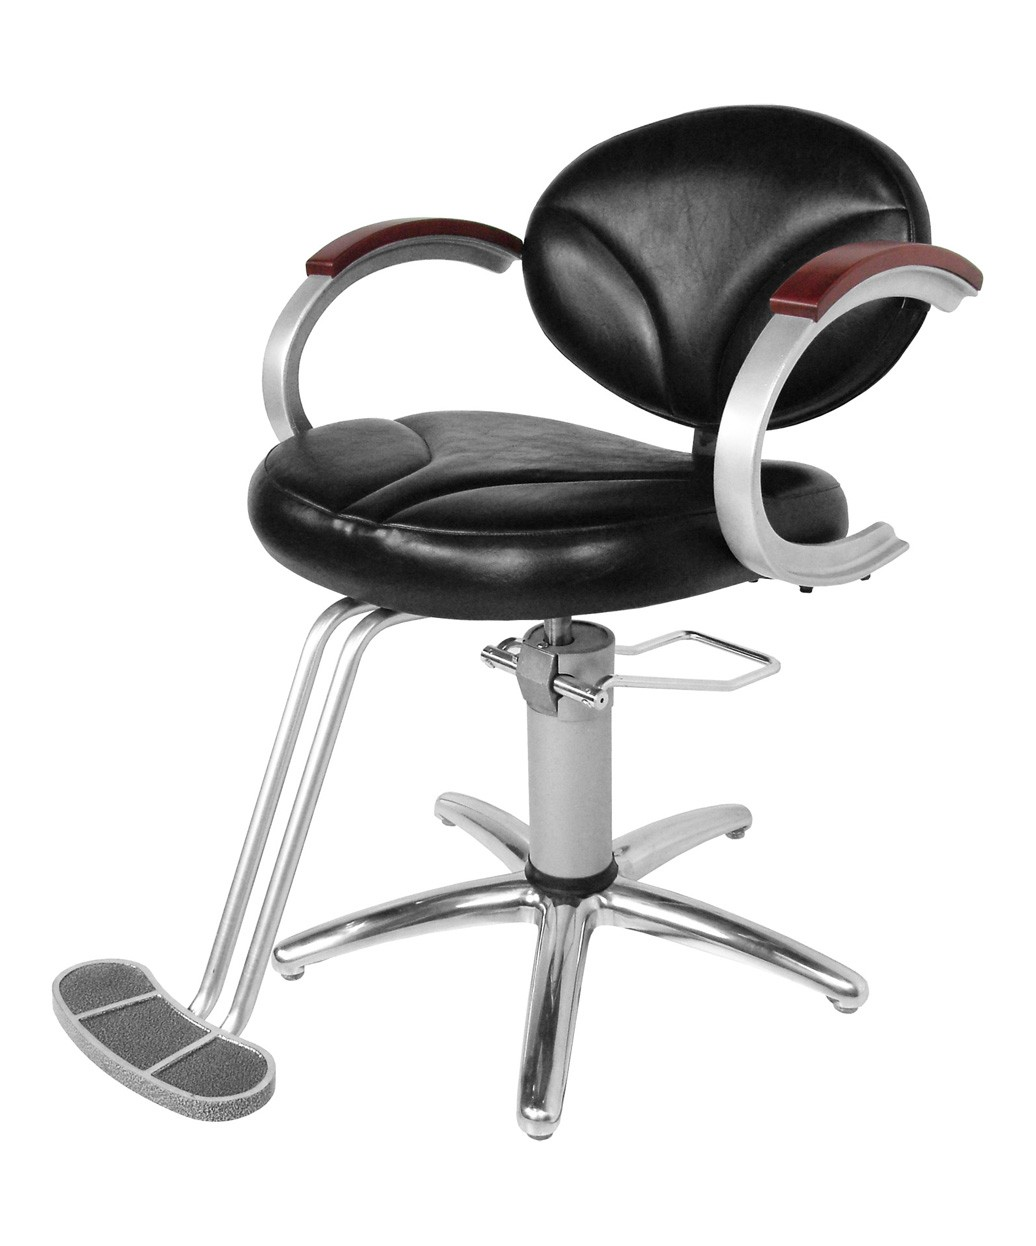 Collins 9100 Silhouette Styling Chair